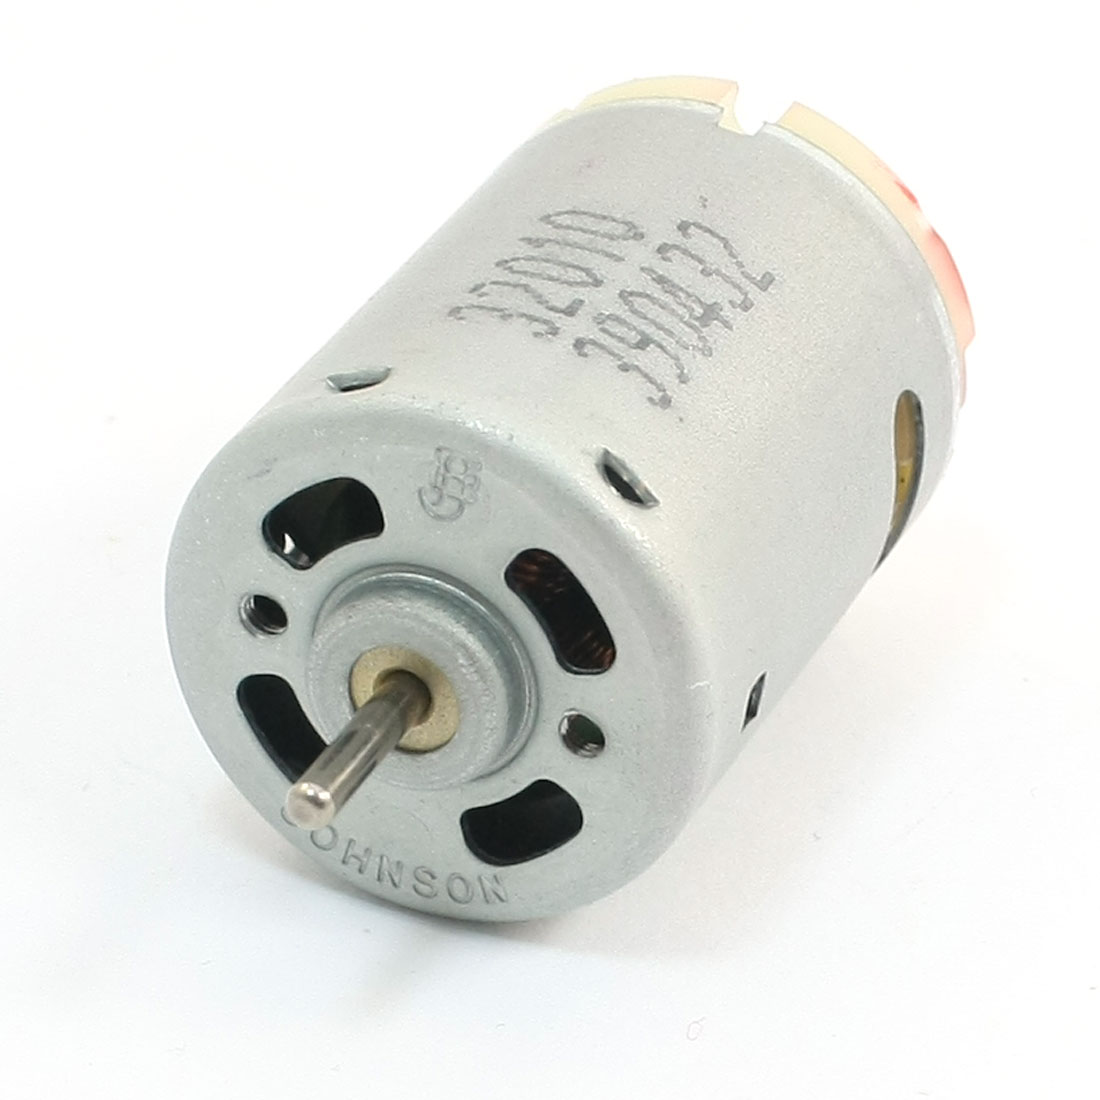 DC 12V 21000RPM High Speed Magnetic Motor for Electric Plush Toy